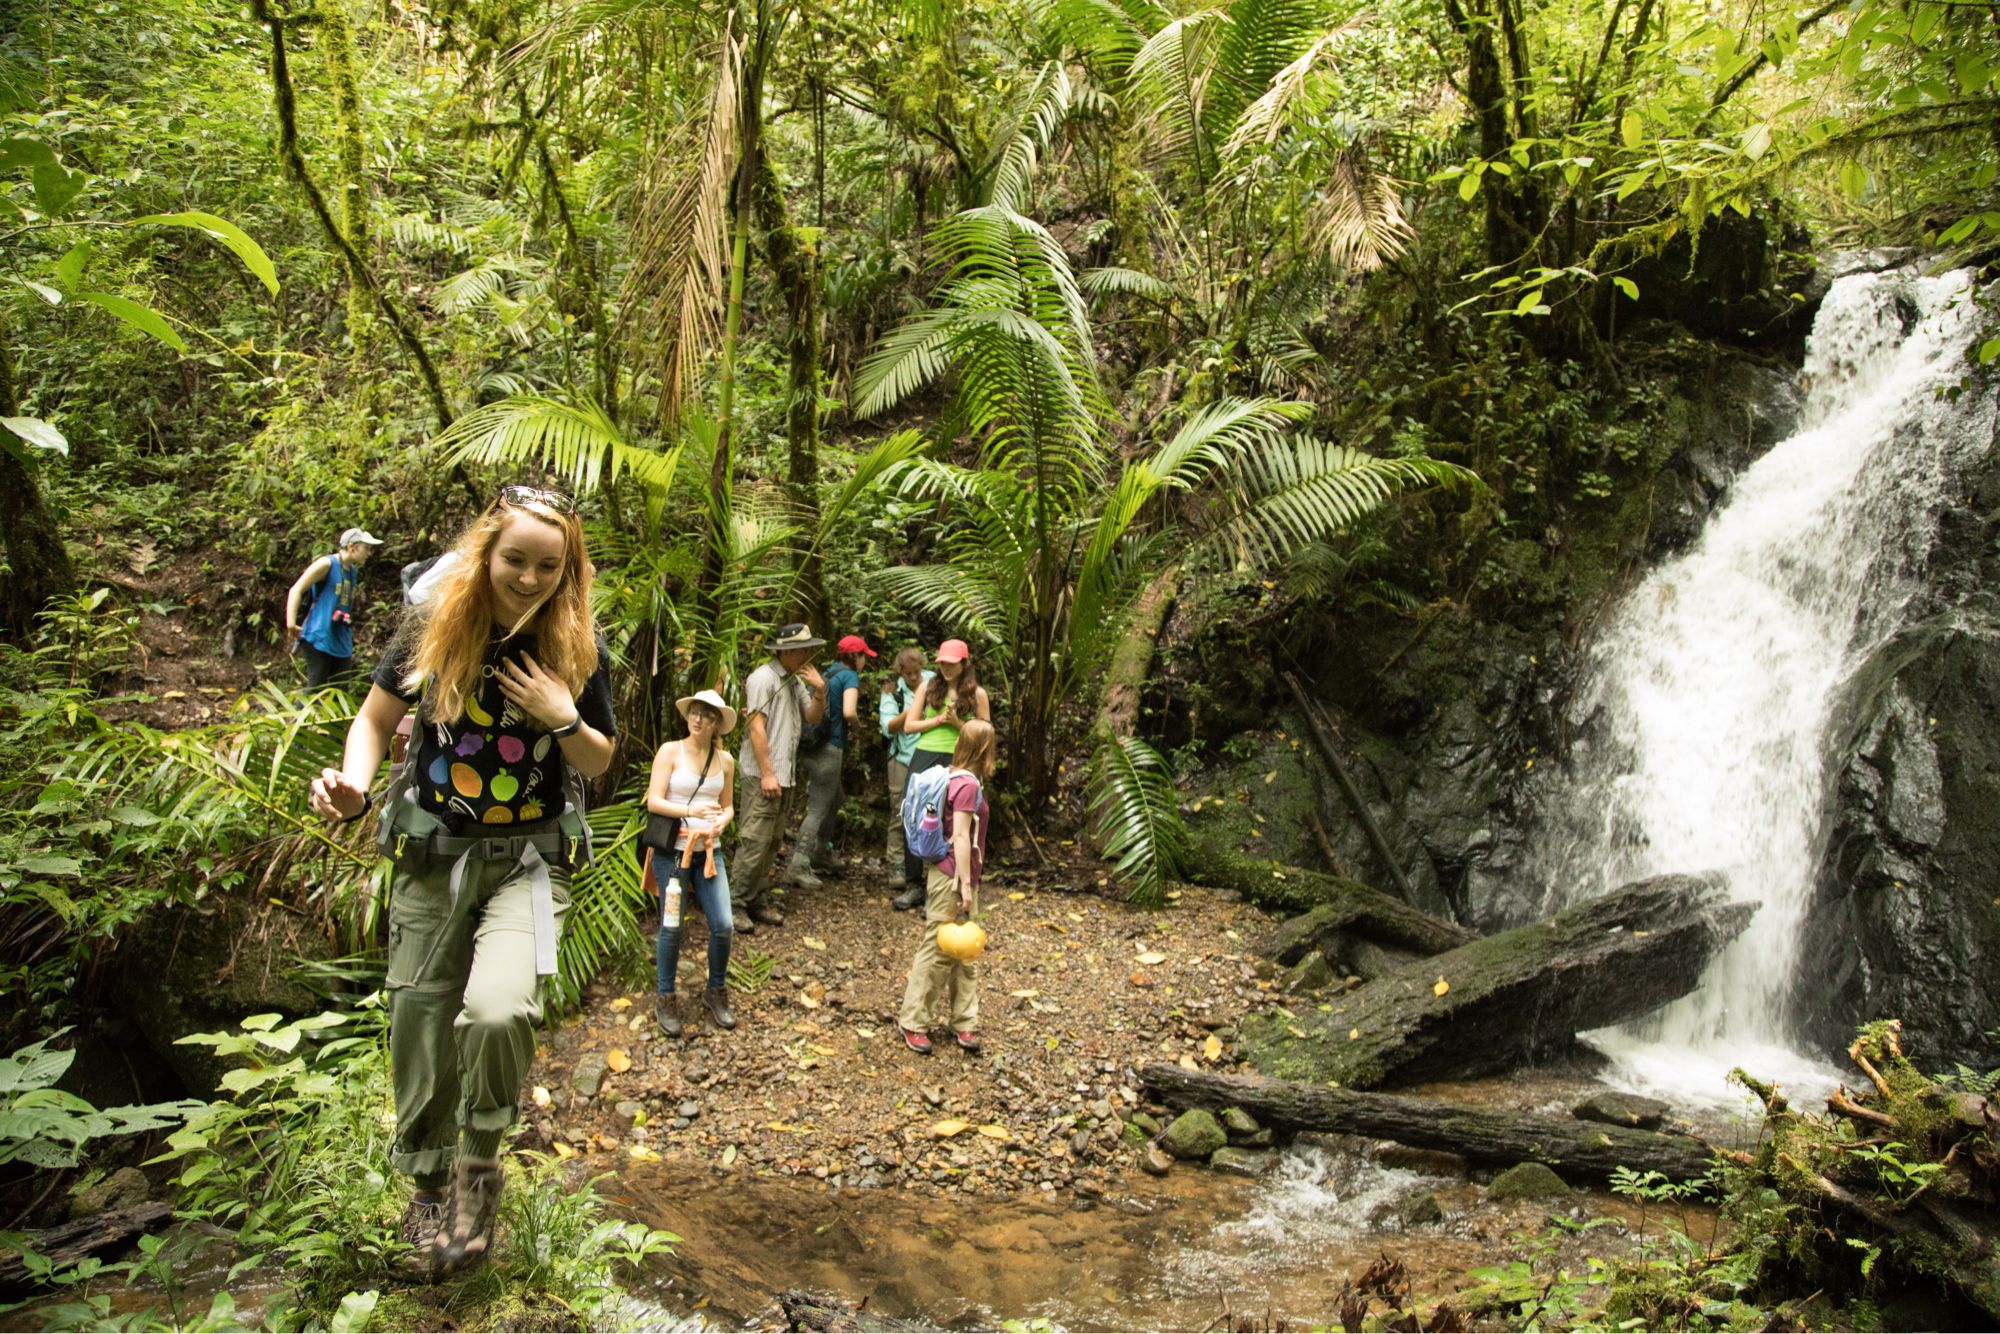 Students in Costa Rica admiring a waterfall.